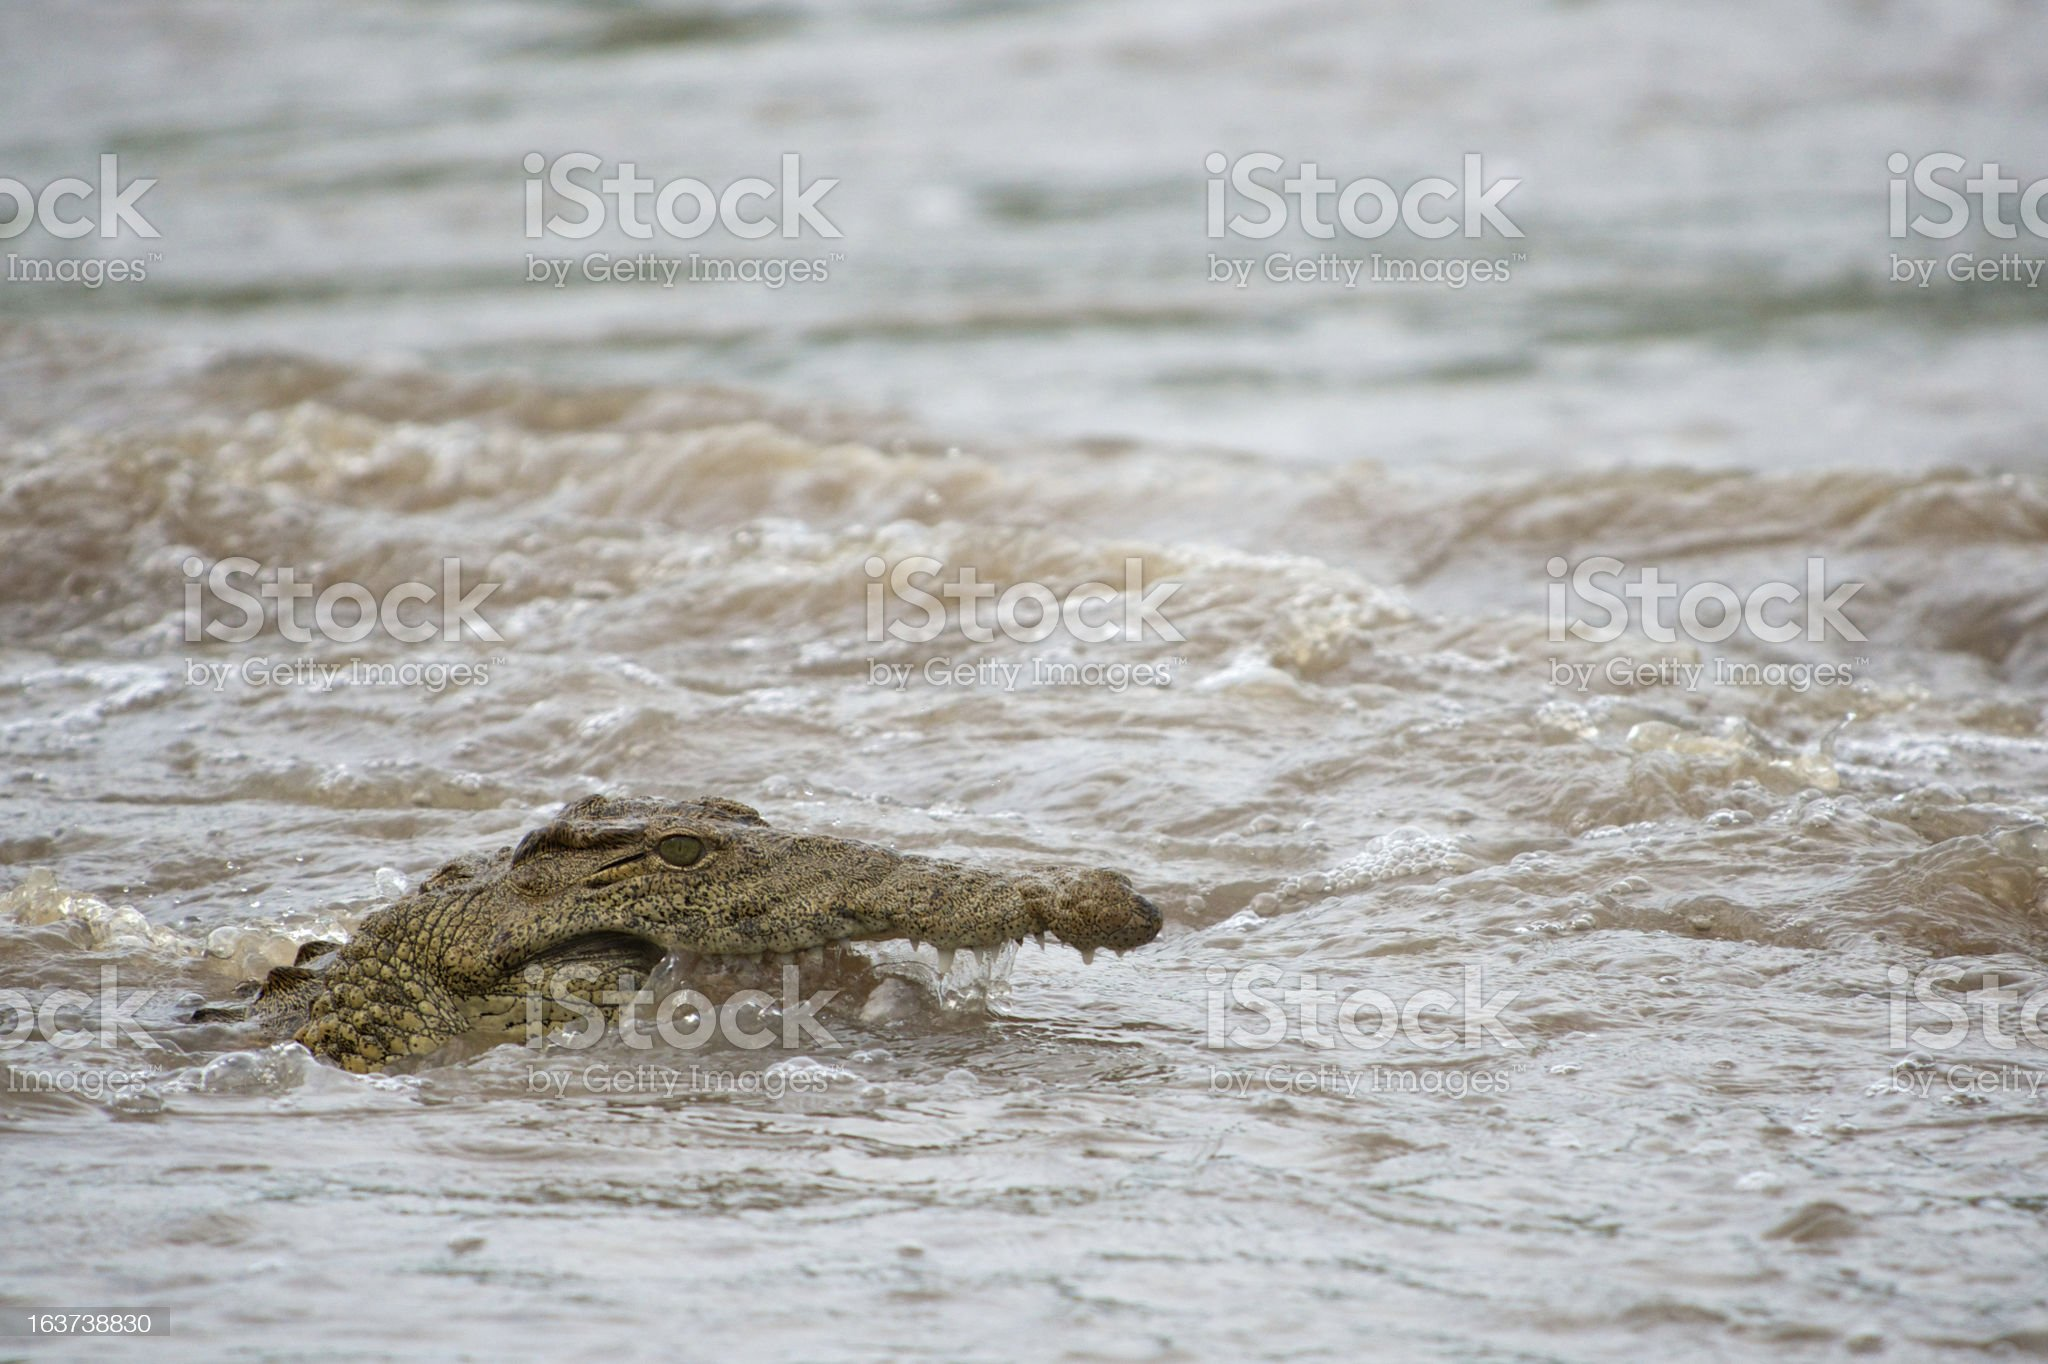 Nile Crocodile in Water royalty-free stock photo